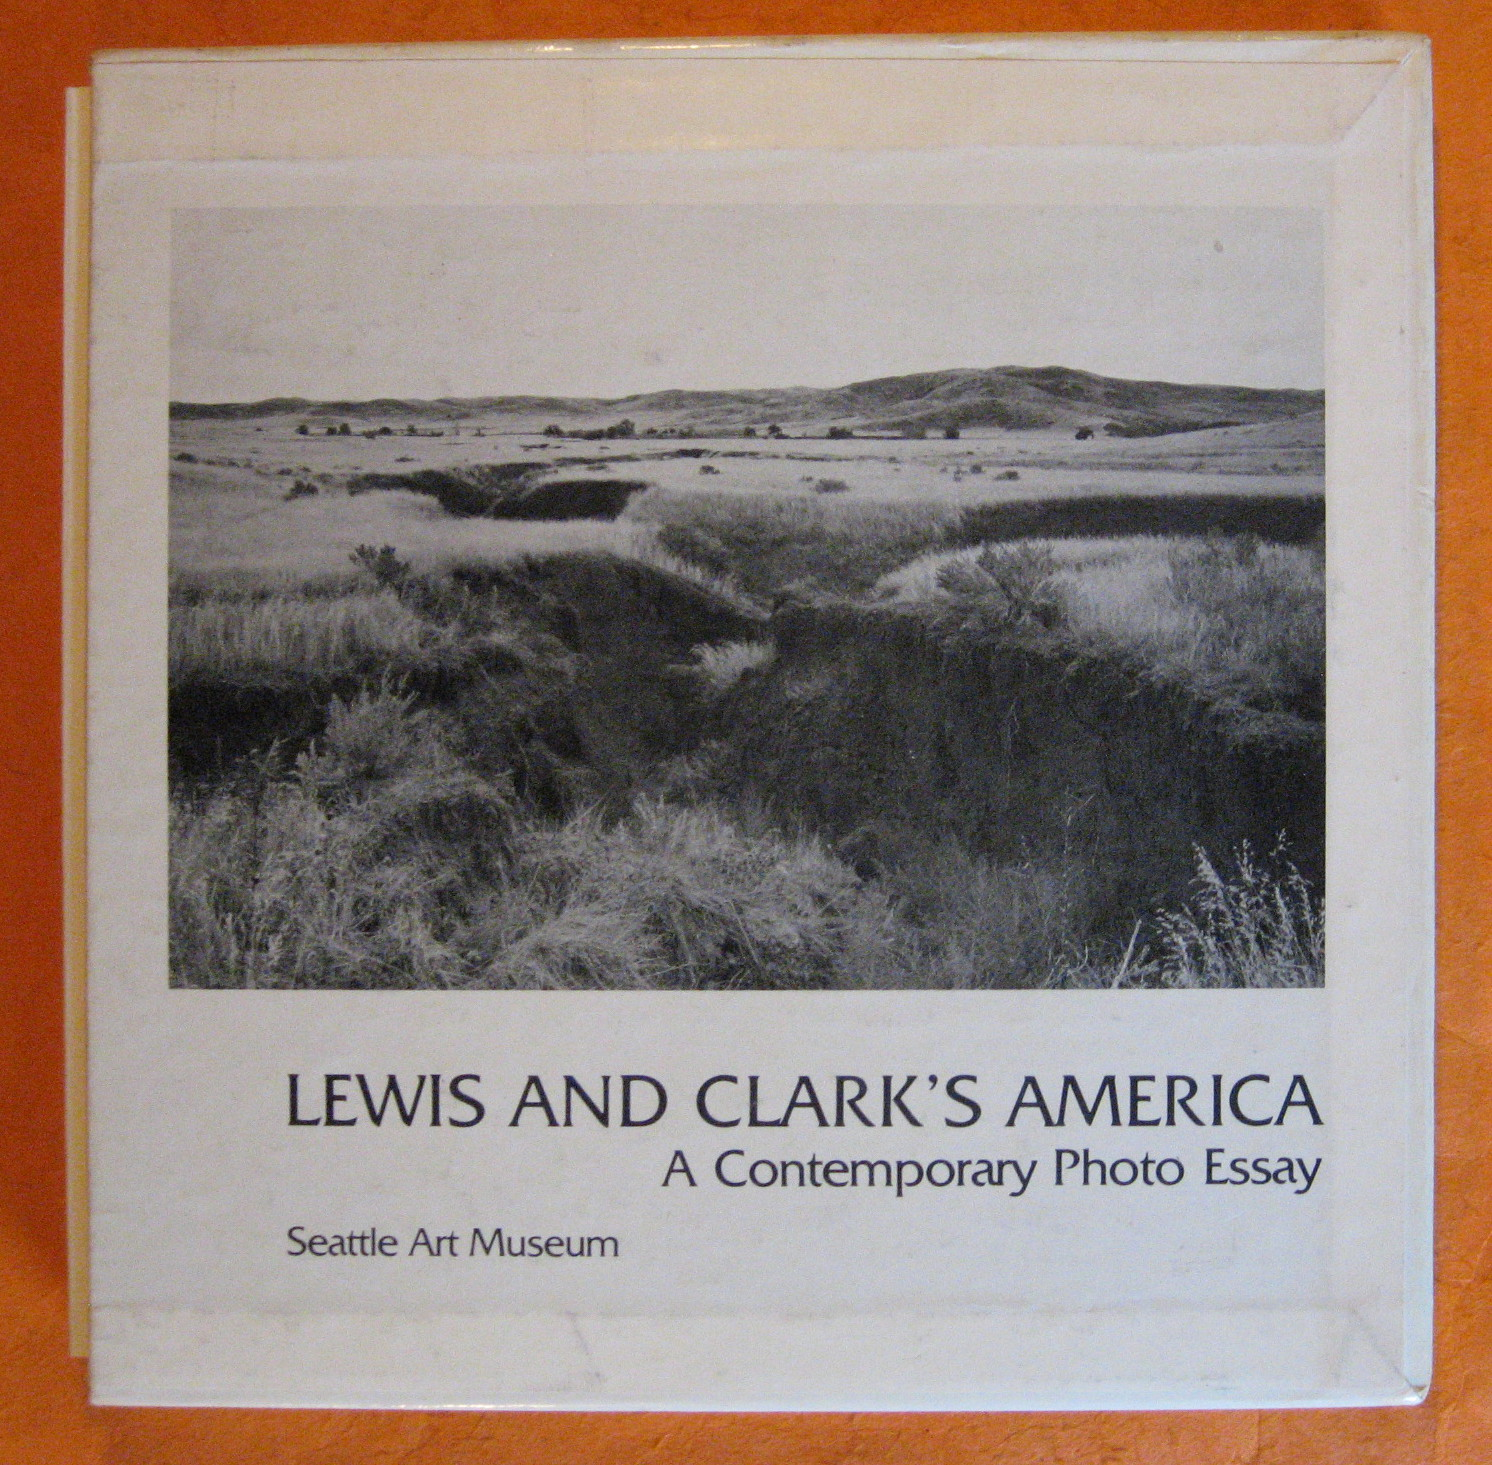 Lewis and Clark's America: A Voyage of Discovery; Lewis and Clark's America: A Contemporary Photo Essay (Two Volume Set), Macapia, Paul; Macapia, Mary;